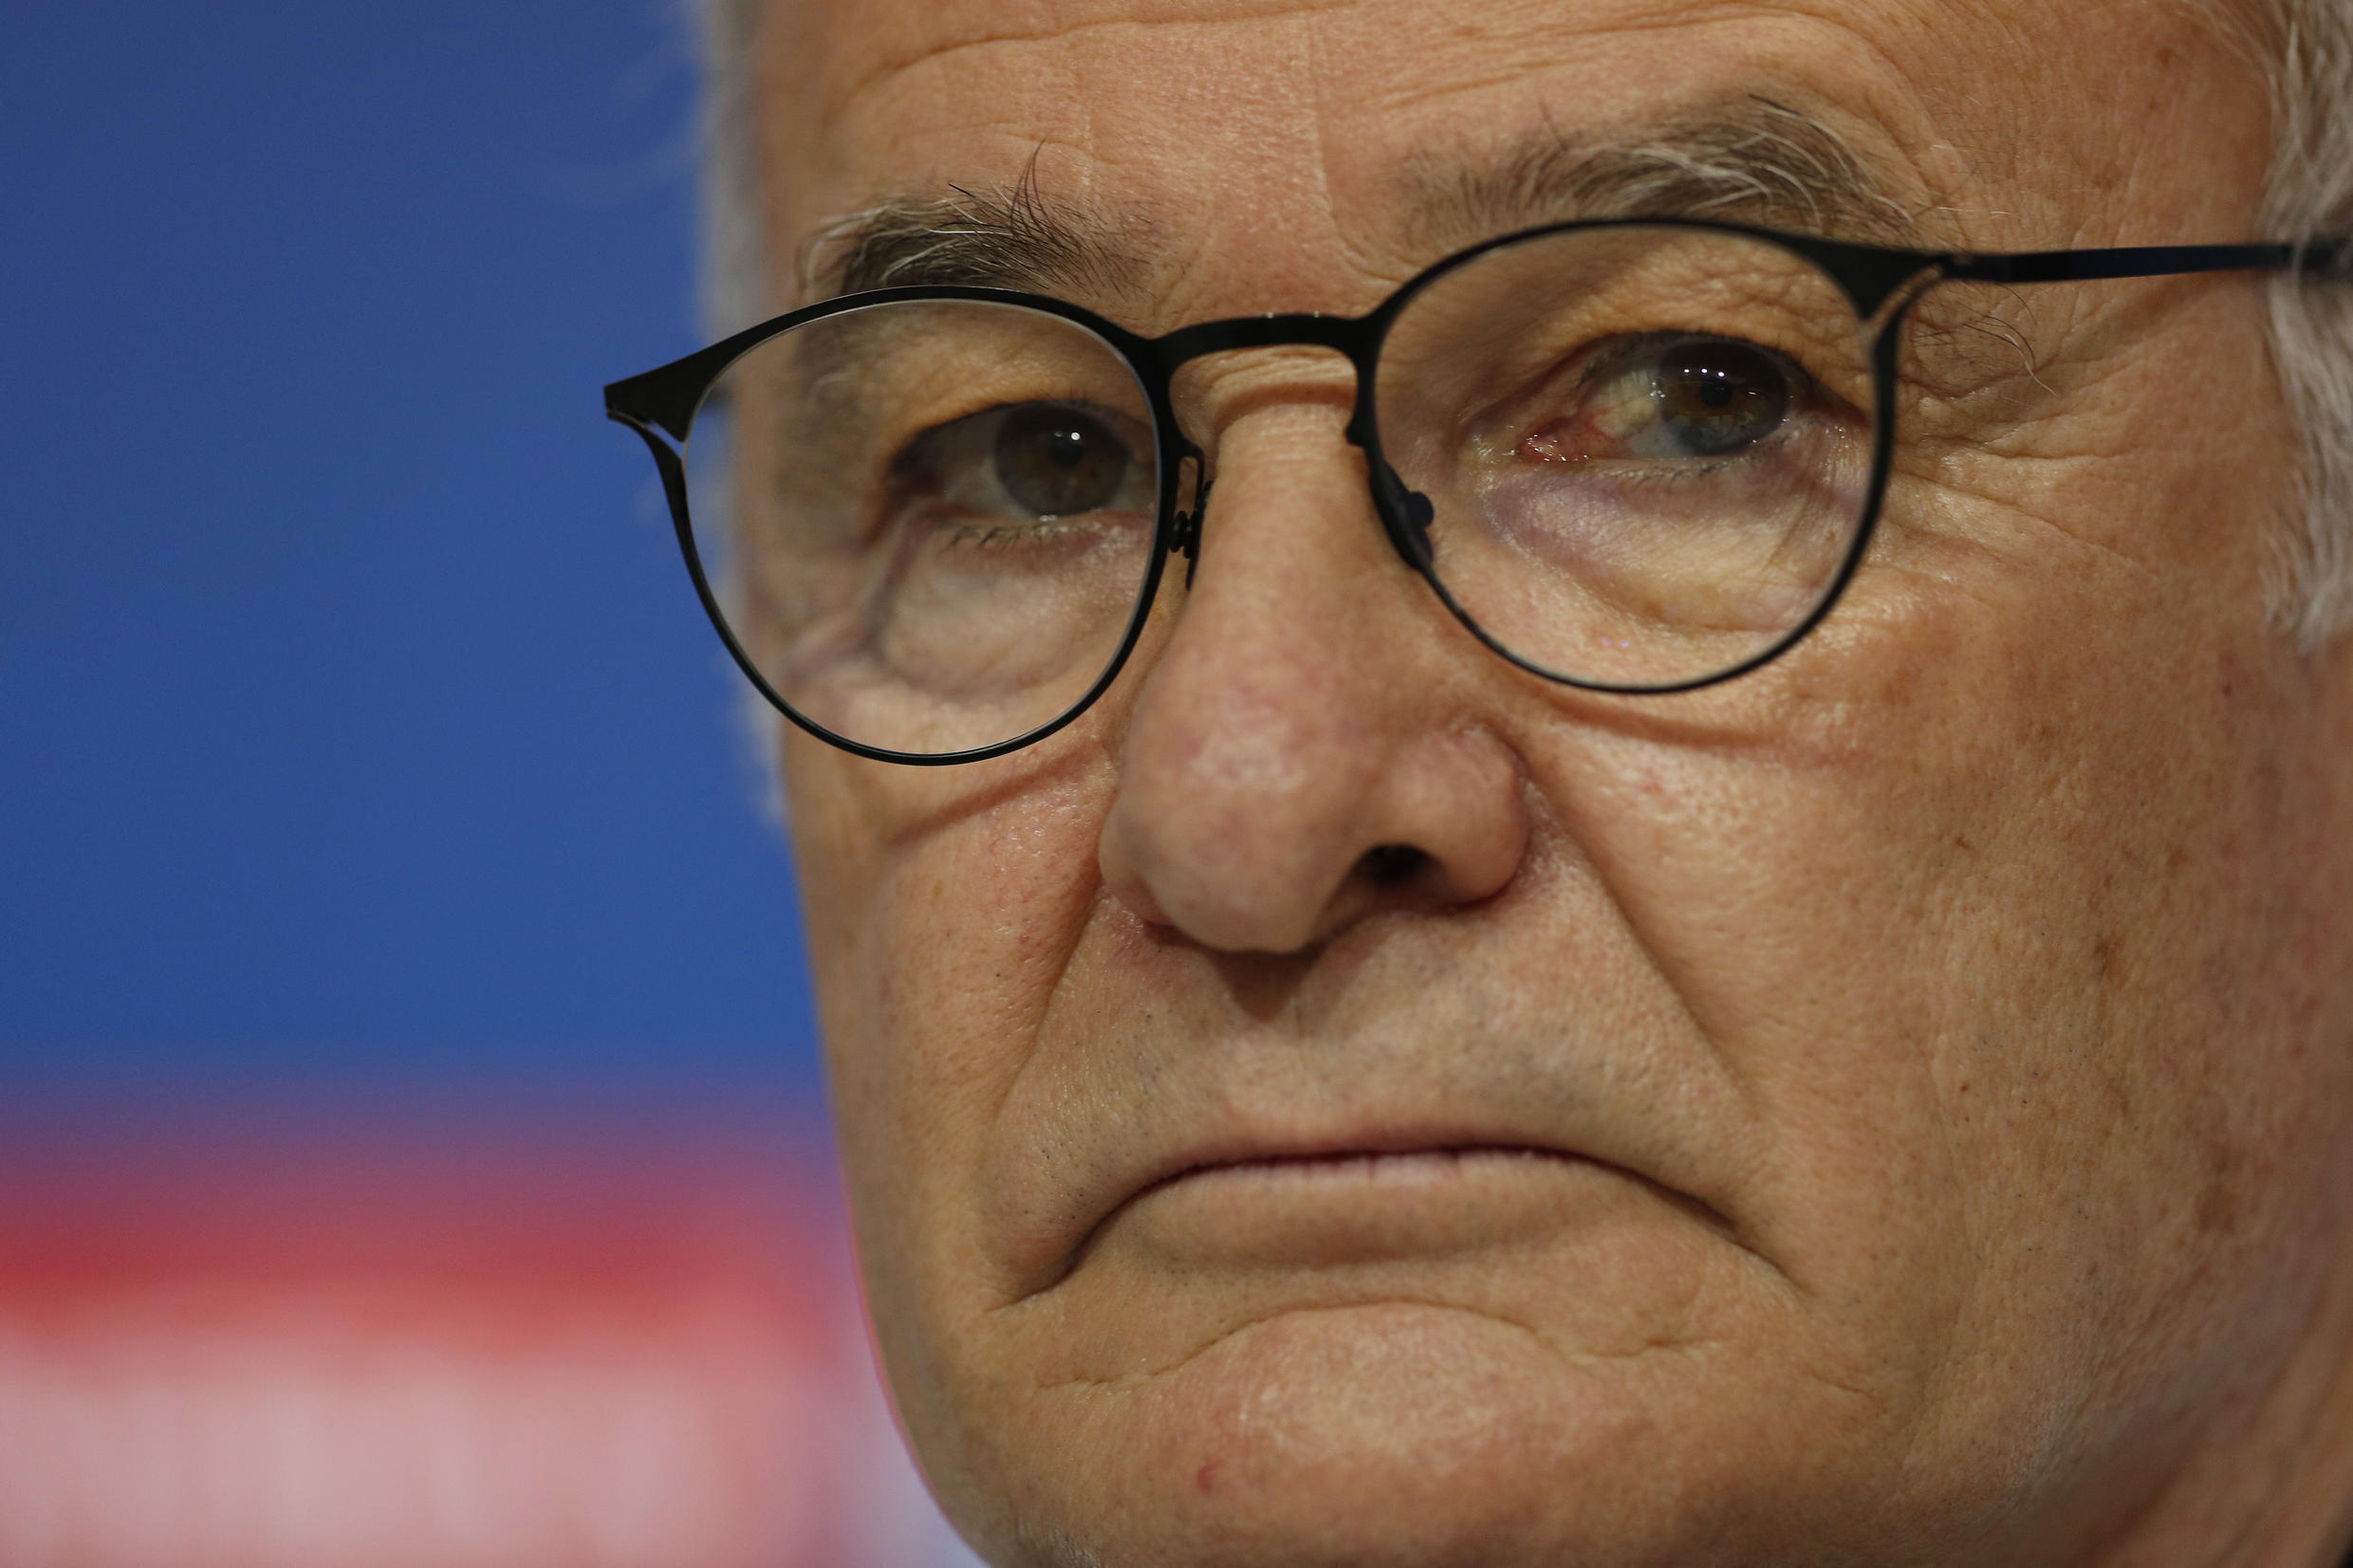 Last season Claudio Ranieri led Leicester City to their first top flight title in more than 130 years of exitence. But the team has struggled to recapture that form this term.